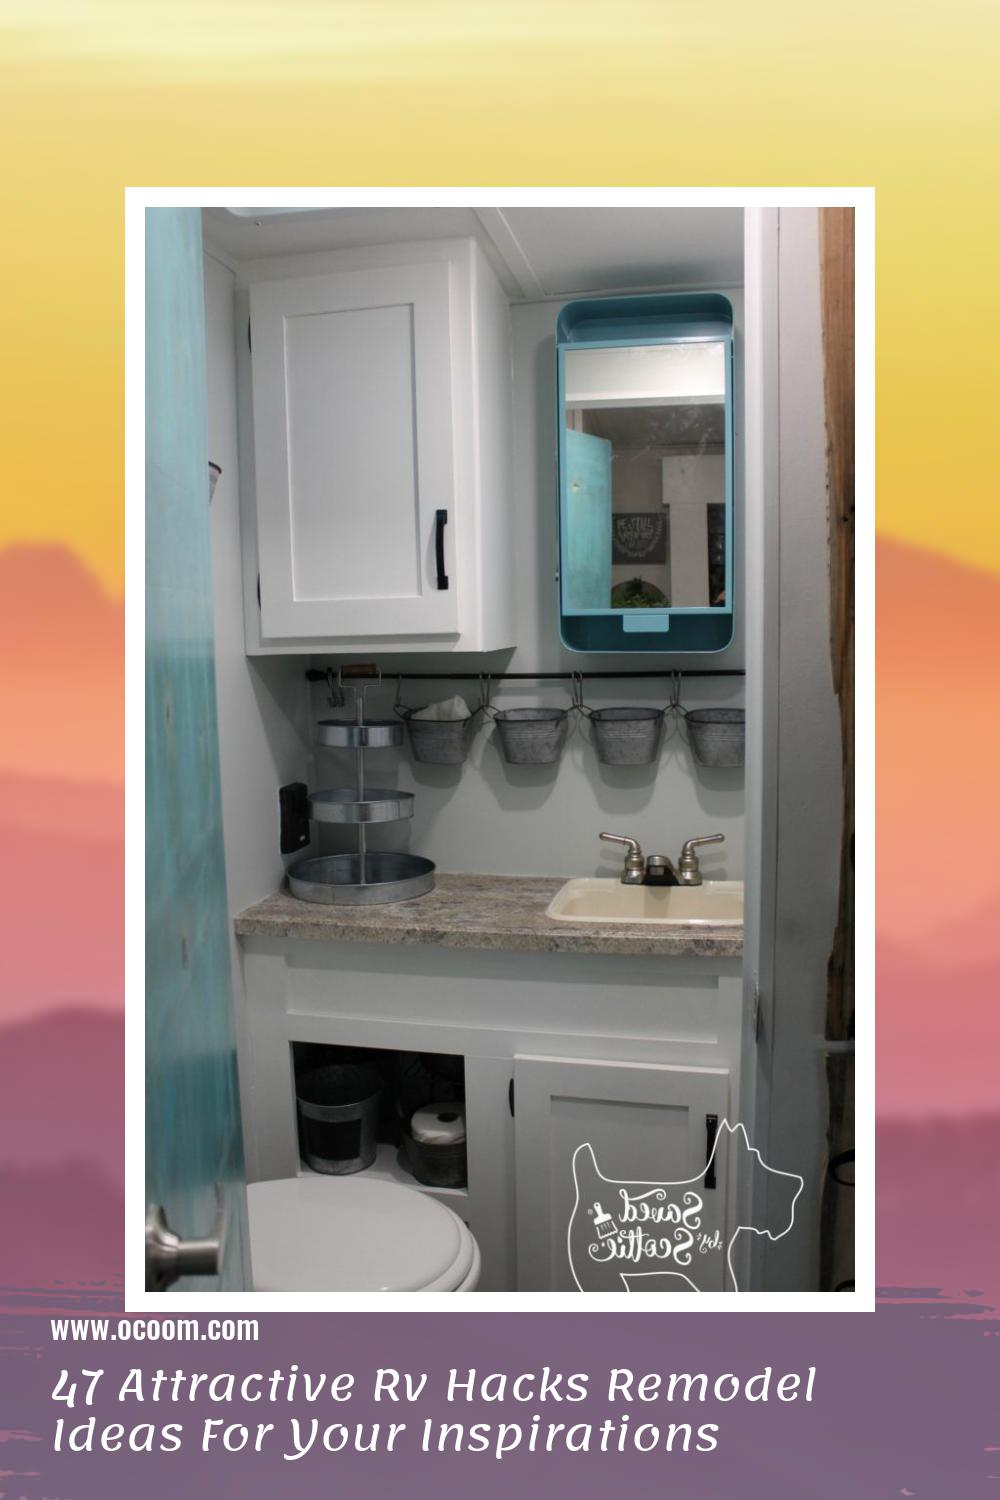 47 Attractive Rv Hacks Remodel Ideas For Your Inspirations 20